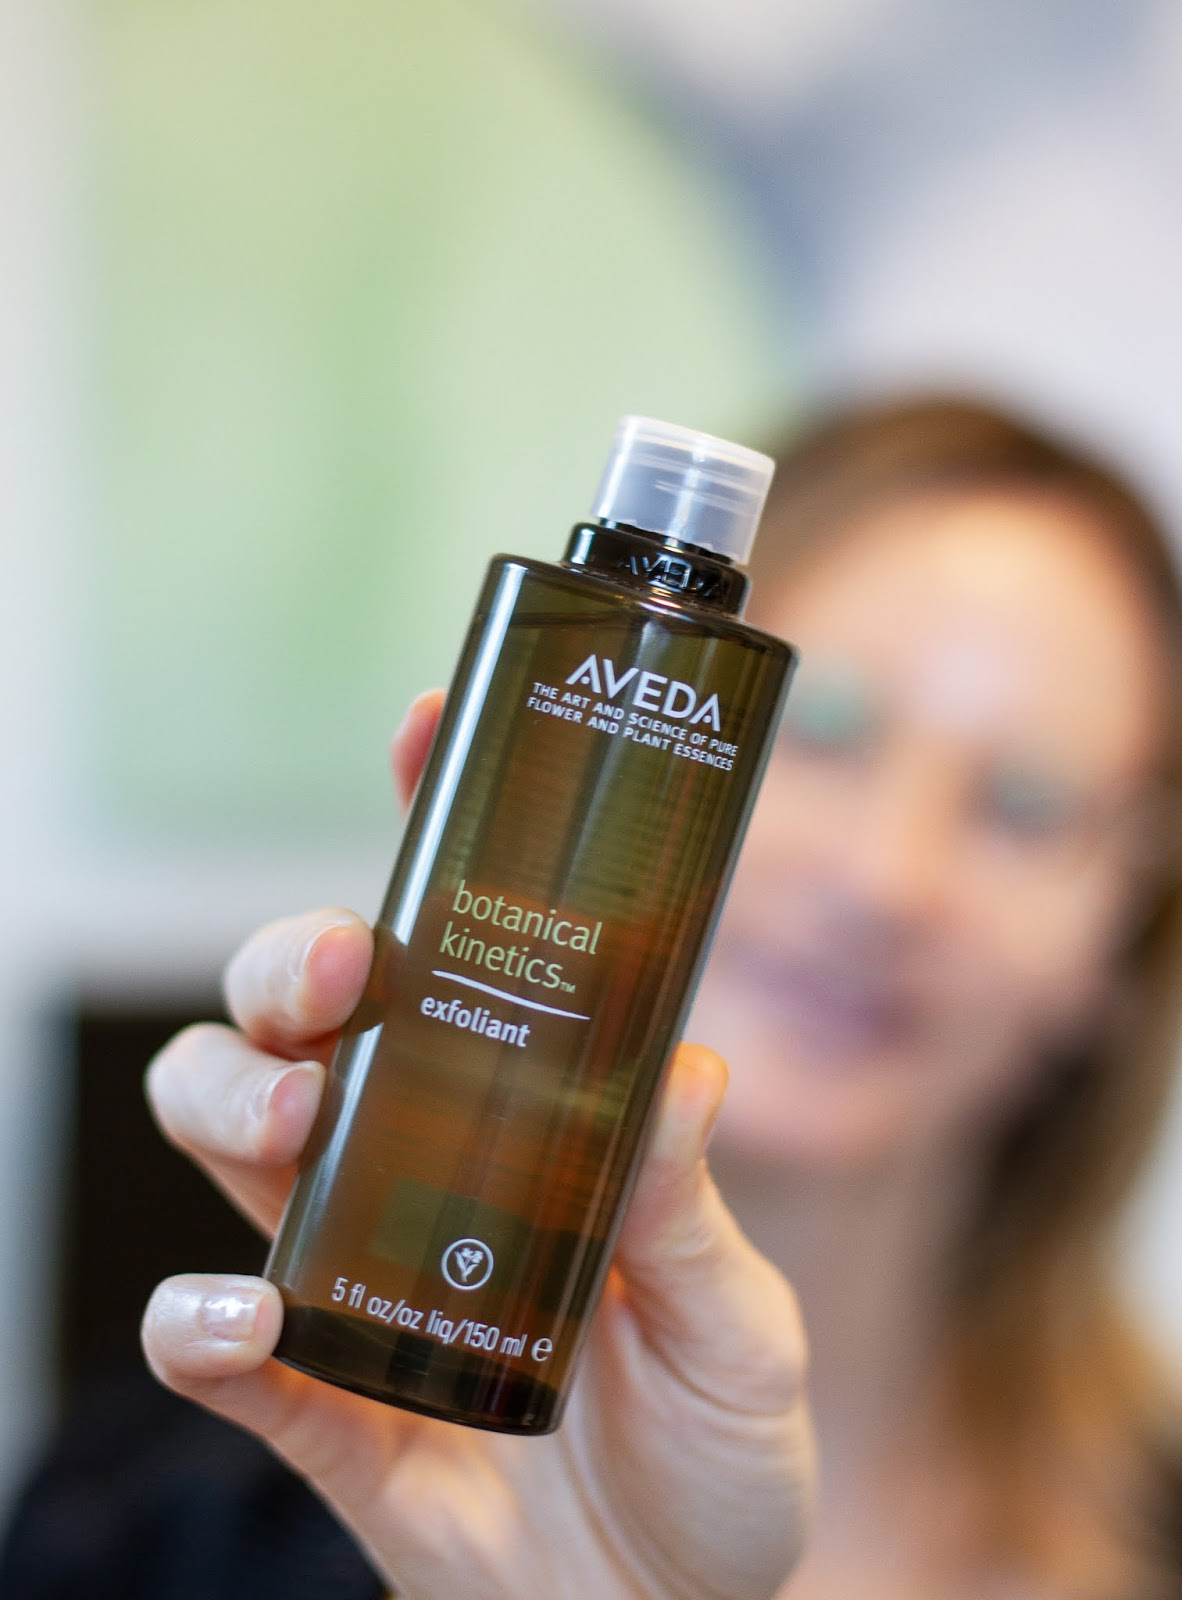 Aveda Exfoliant Product shot